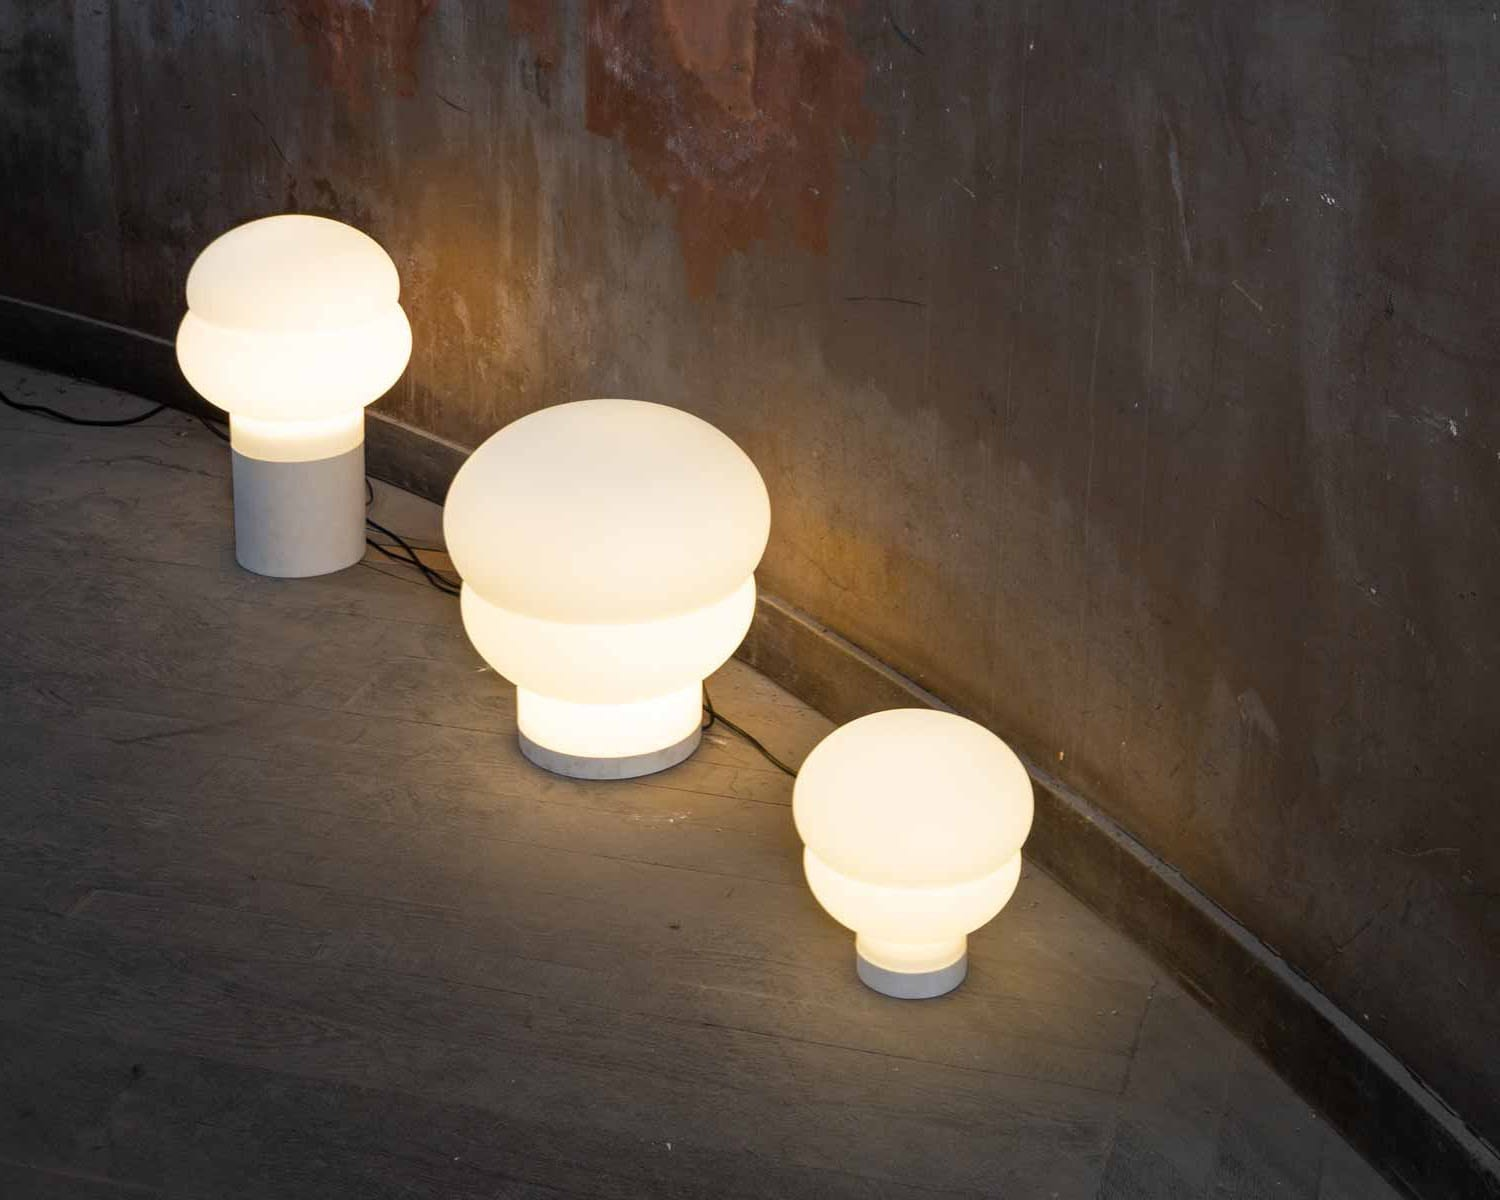 Kumo floor & table lamps by No Made Design for Pulpo at Maison & Objet 2019 | Yellowtrace